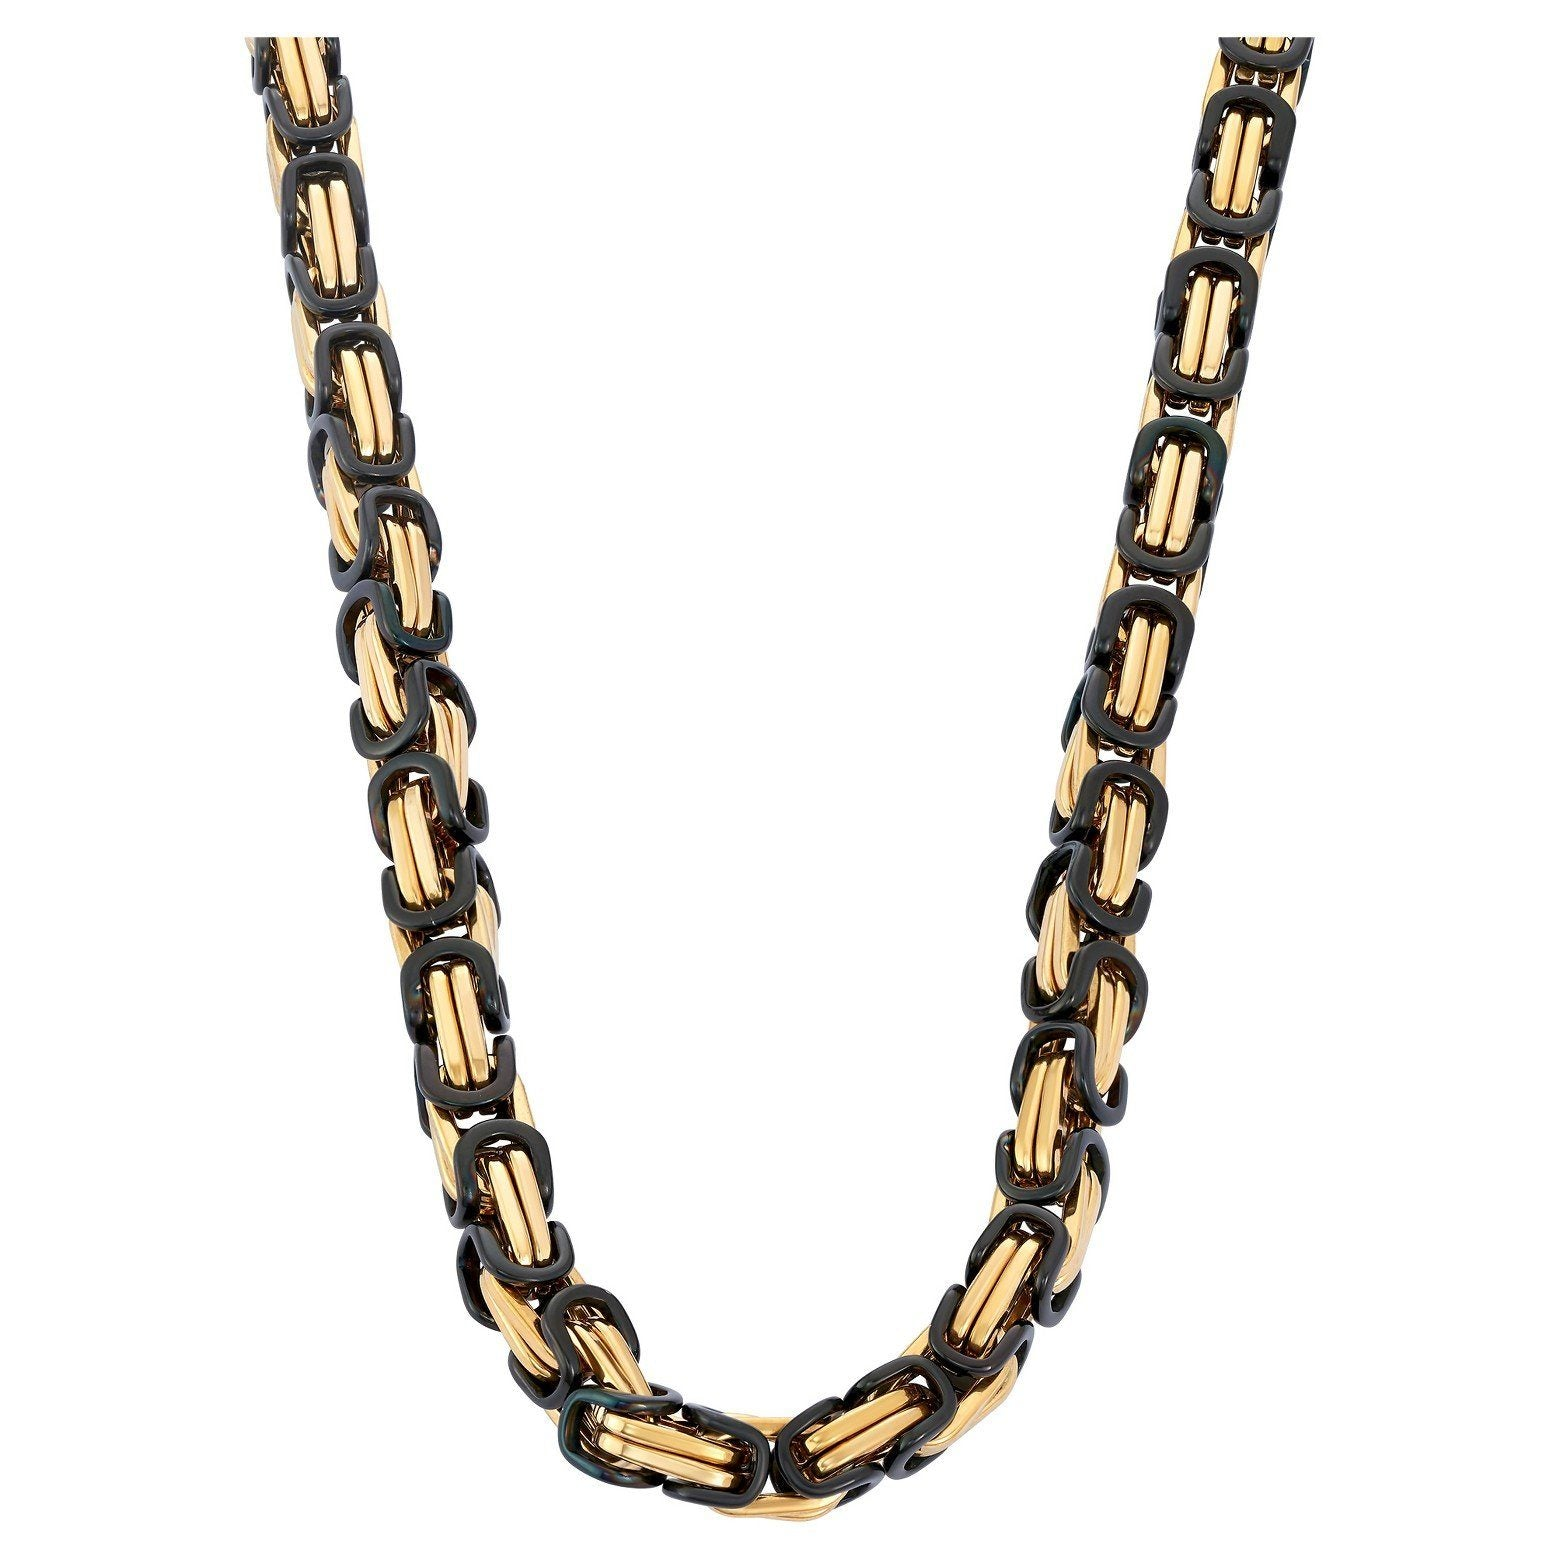 Chains - 8mm Gold & Black Byzantine Chain